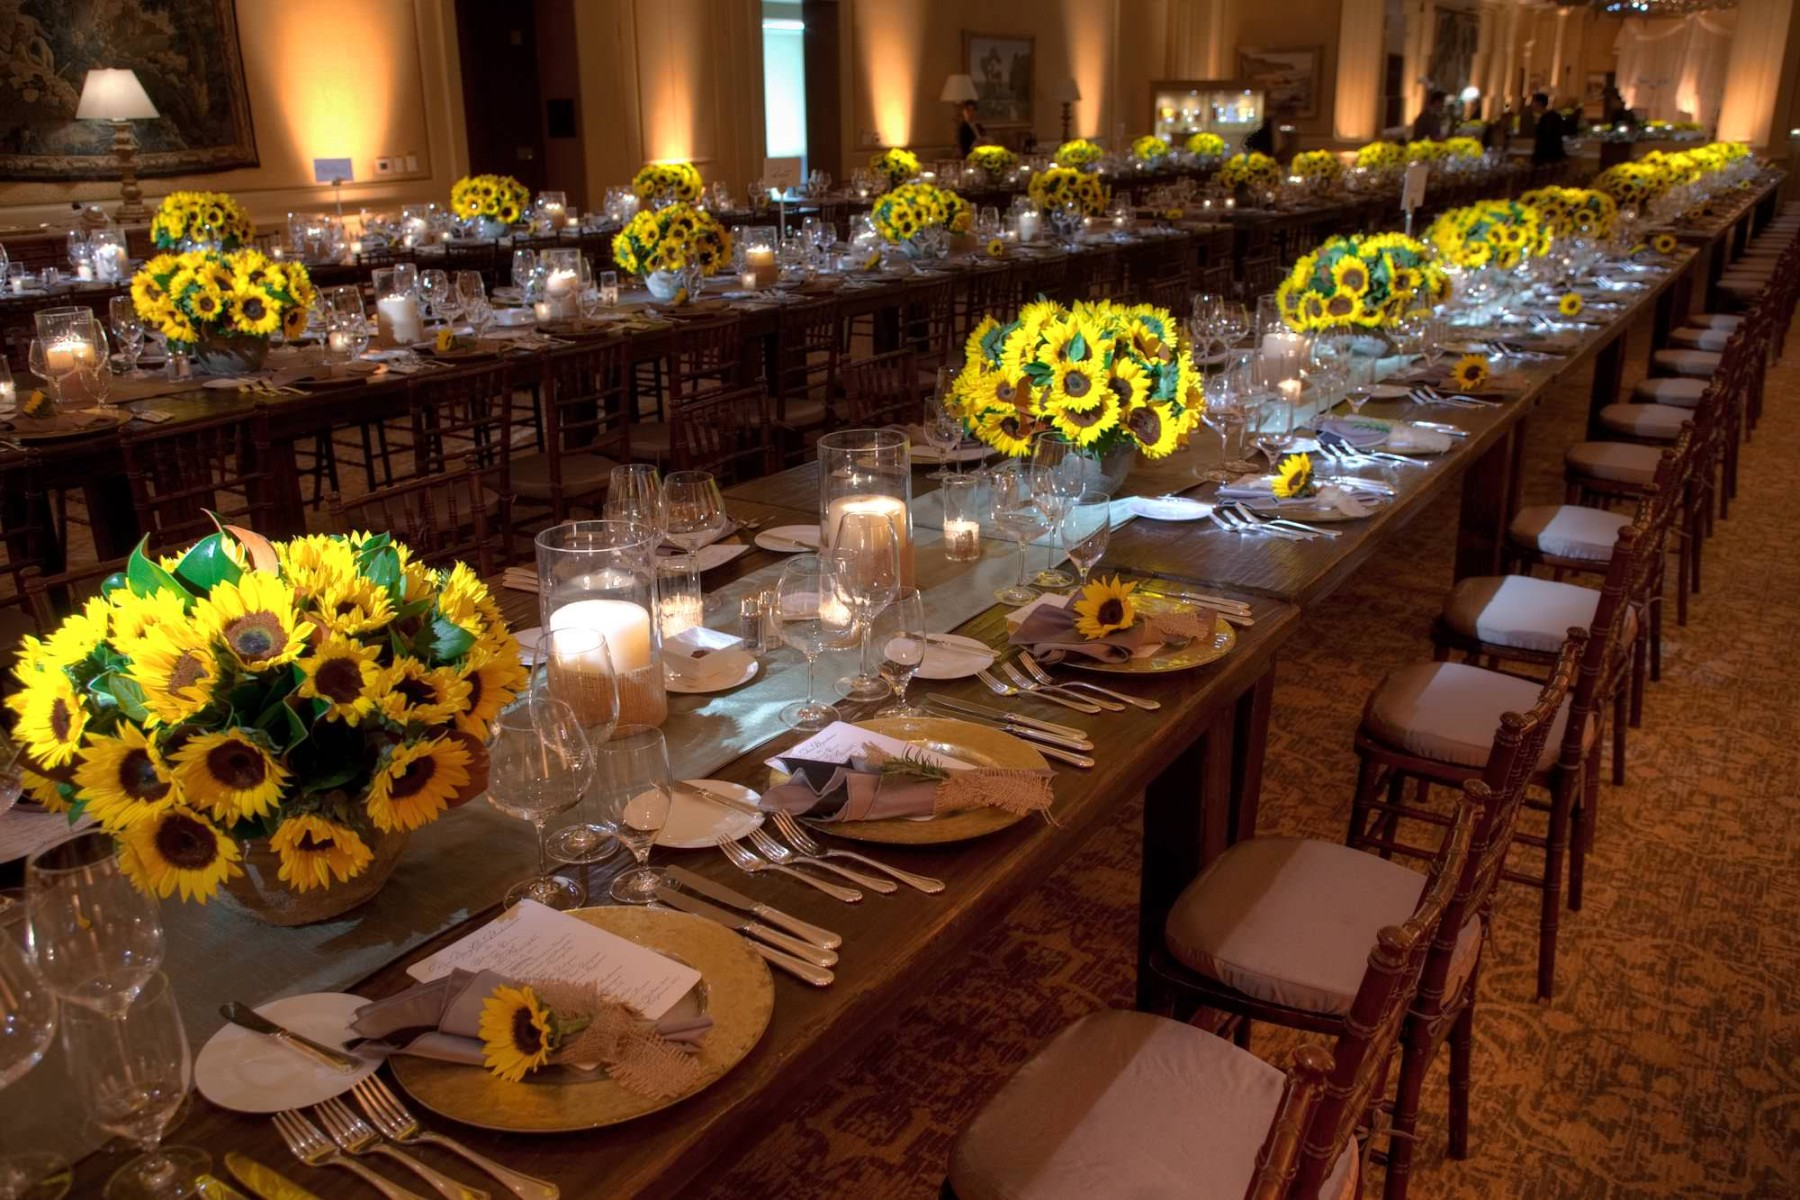 nisies-enchanted-florist-orange-county-Sunflowers-Cosentino-Rehearsal-Dinner-Pelican-Hill-Resort-event-5